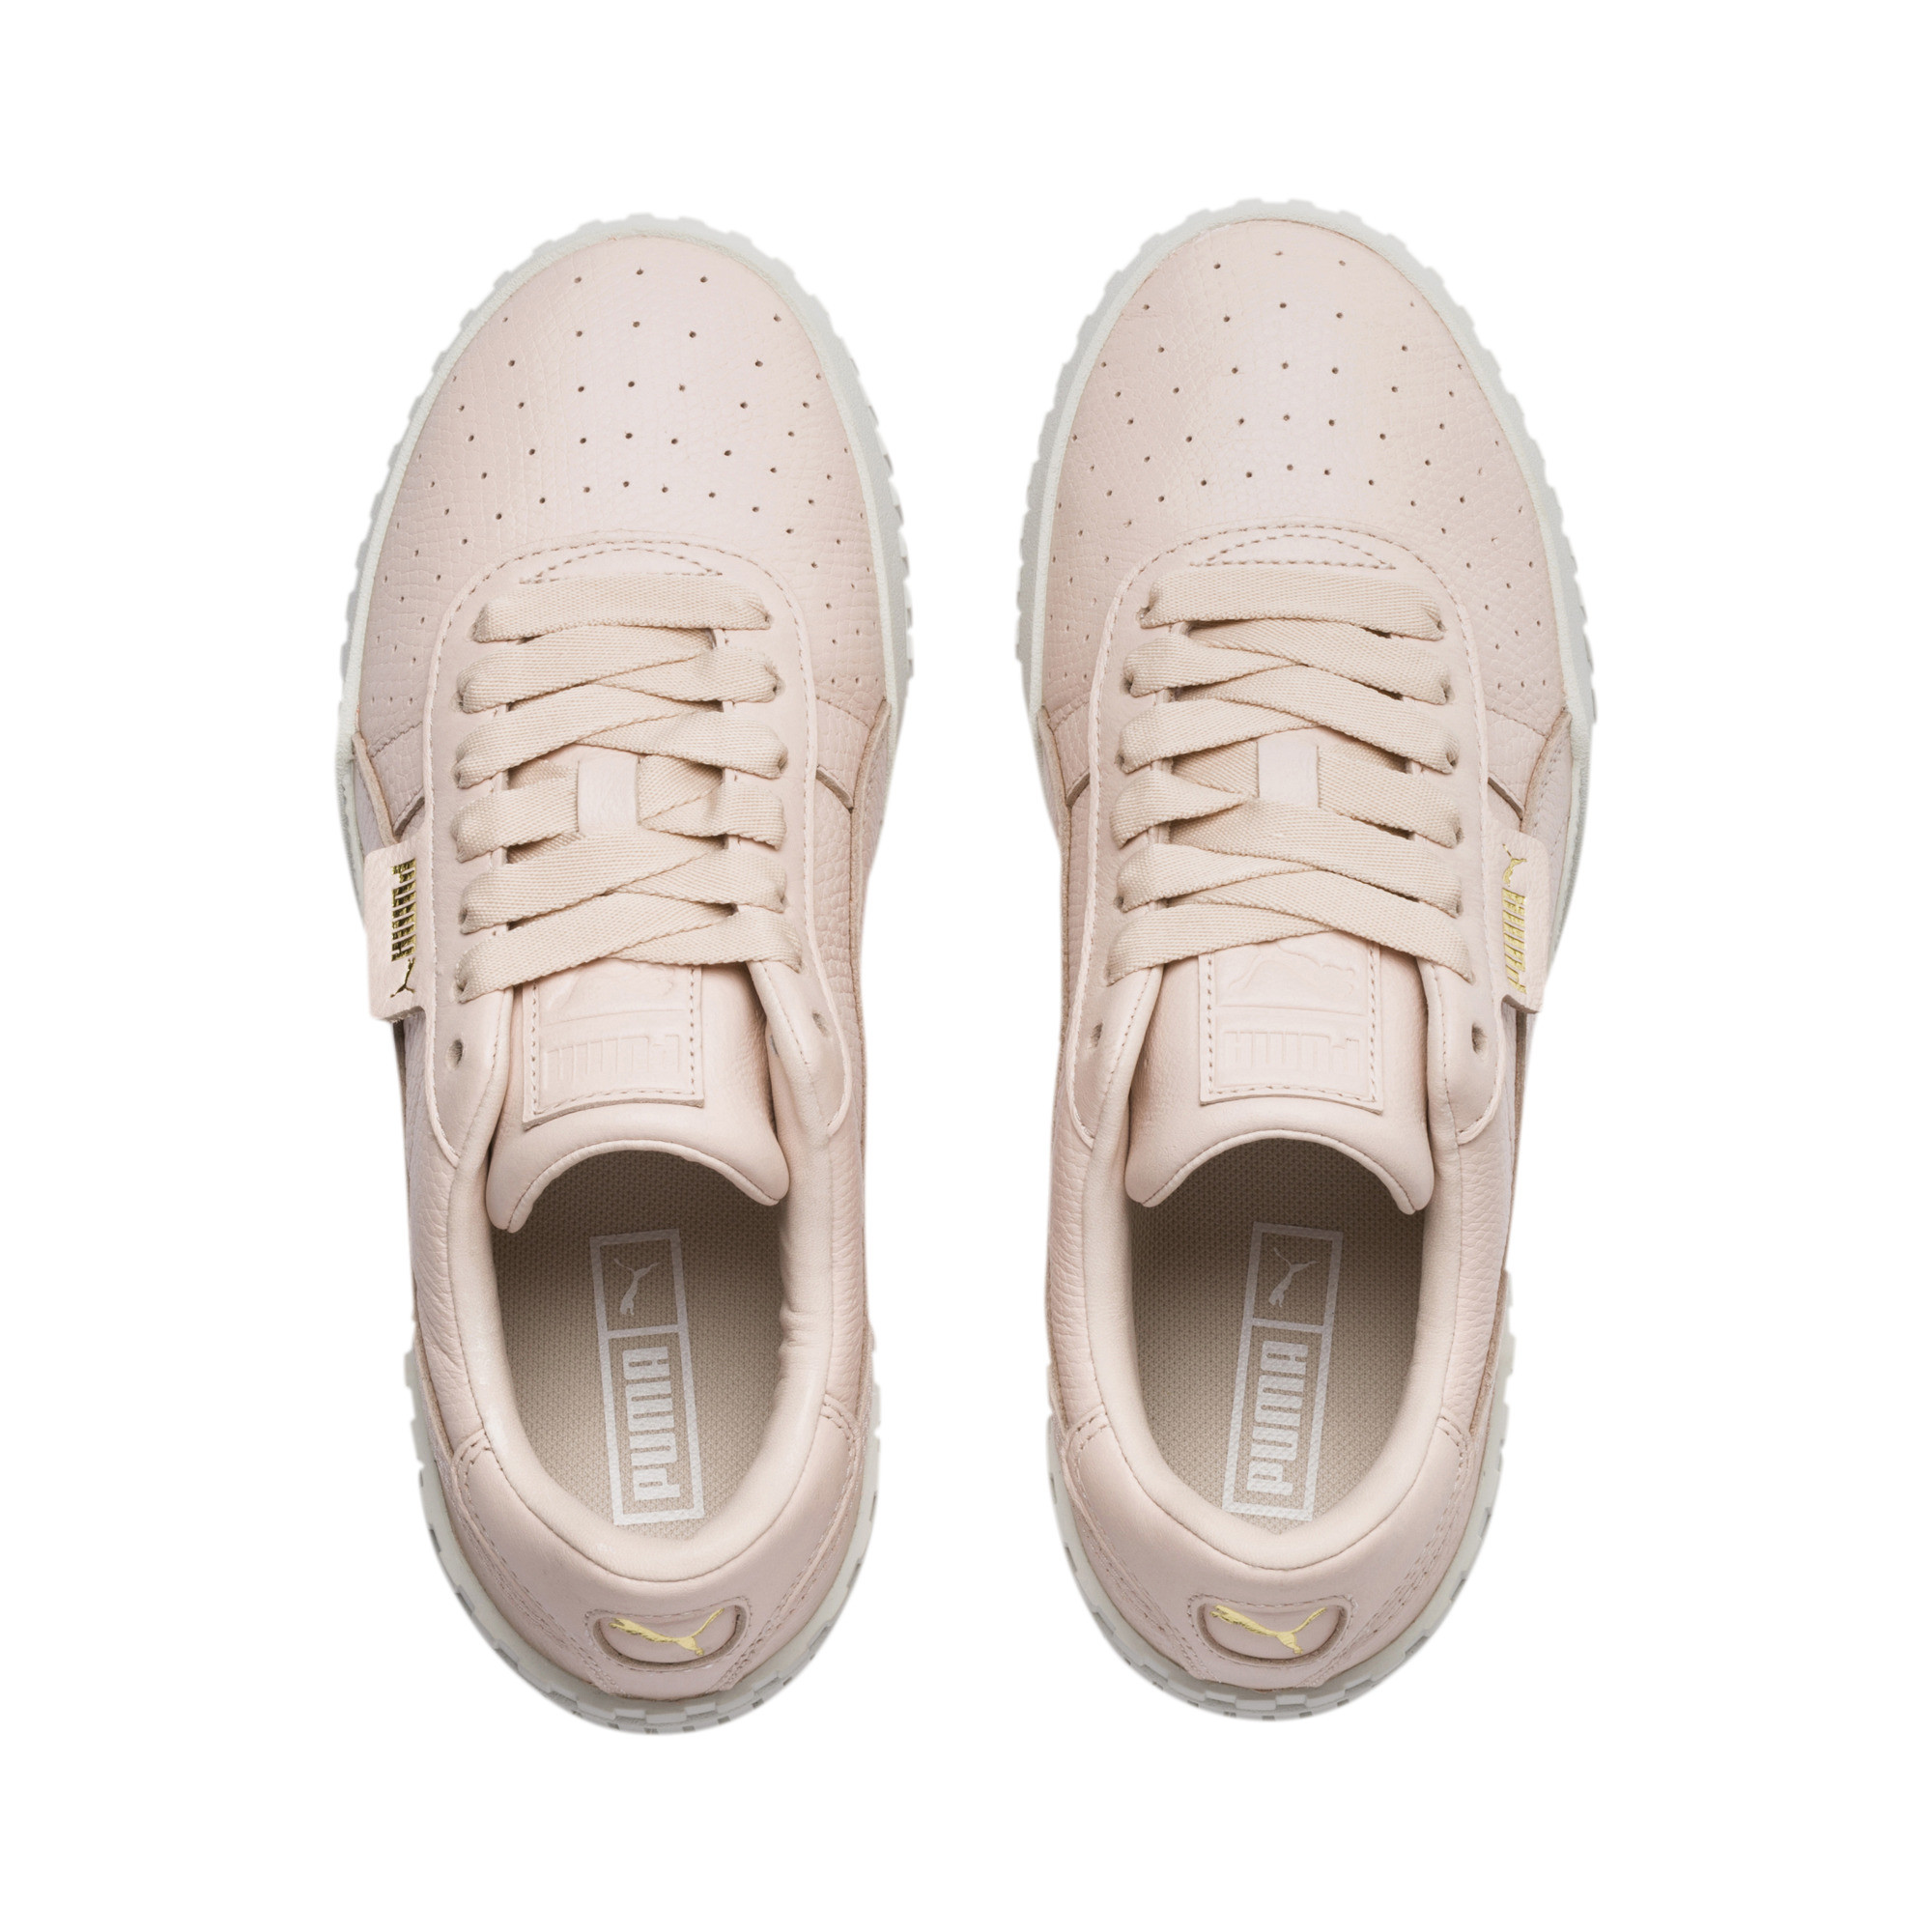 PUMA-Cali-Emboss-Women-039-s-Sneakers-Women-Shoe-Evolution thumbnail 15